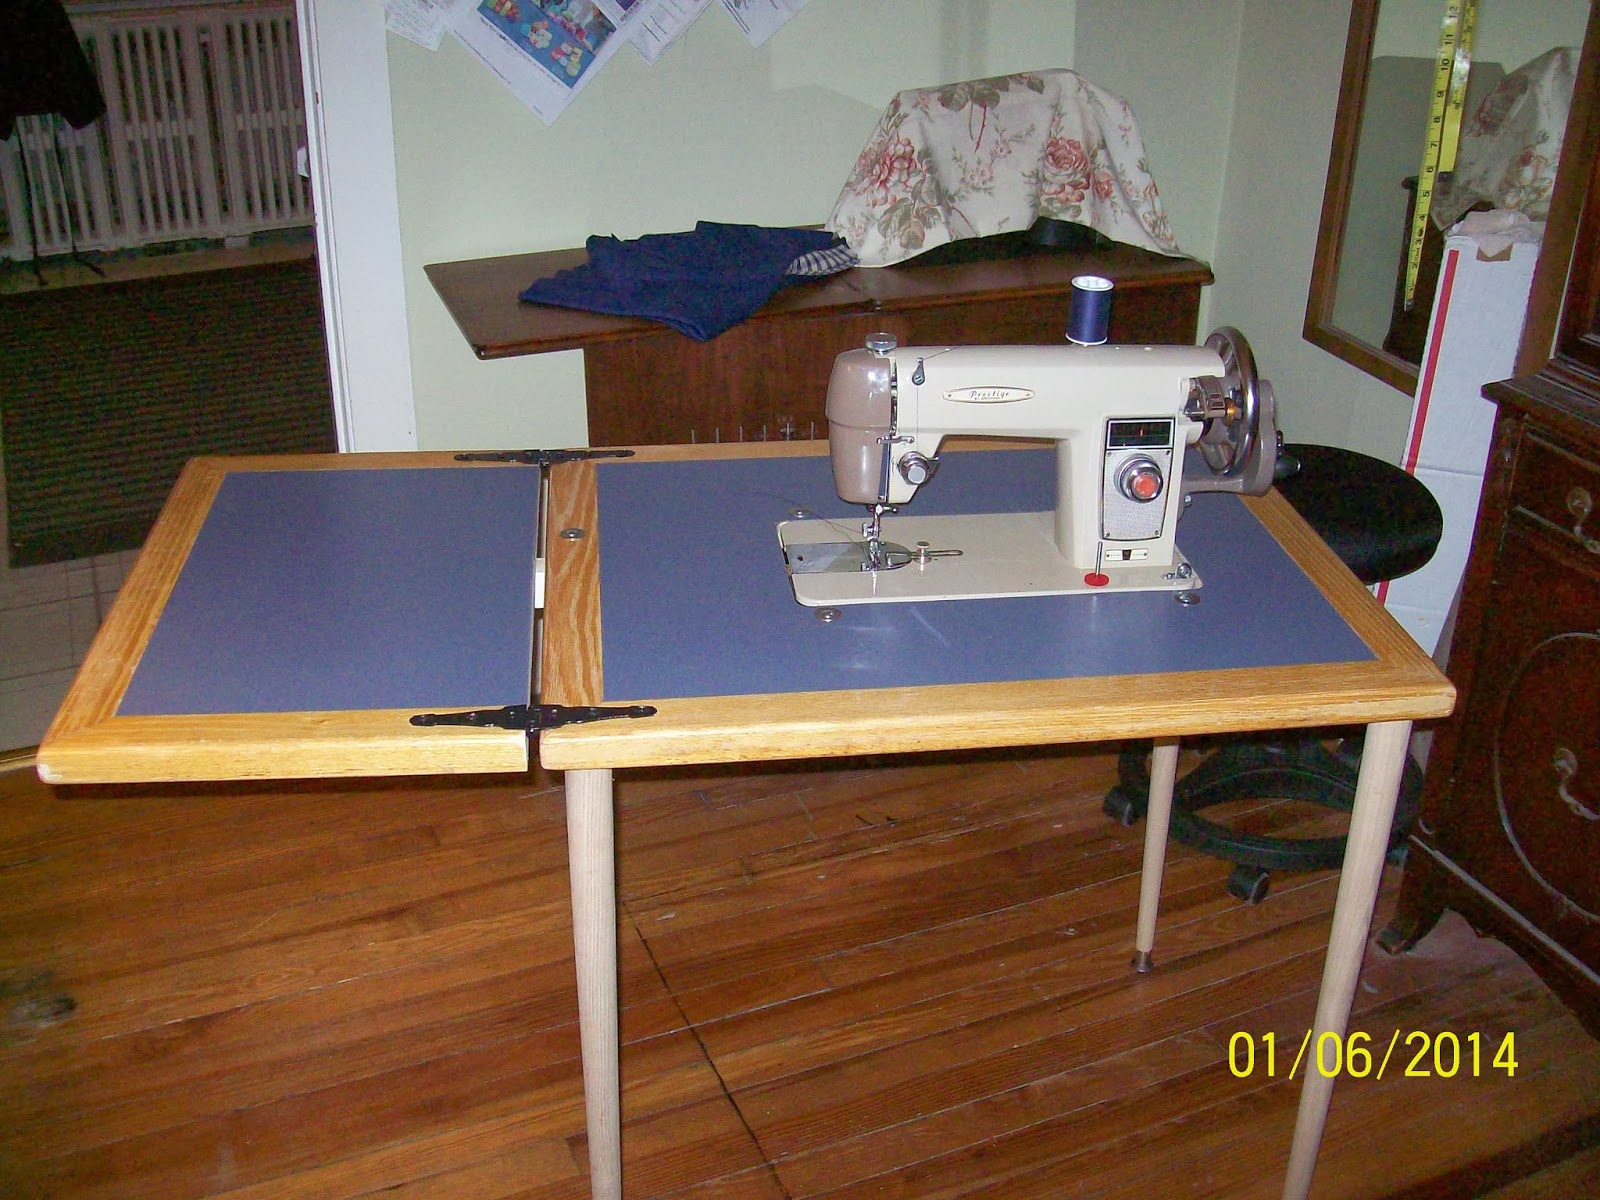 Seam Ripper Joe...and His Sewing Machine: D.I.Y. Flatbed Sewing Machine  Table